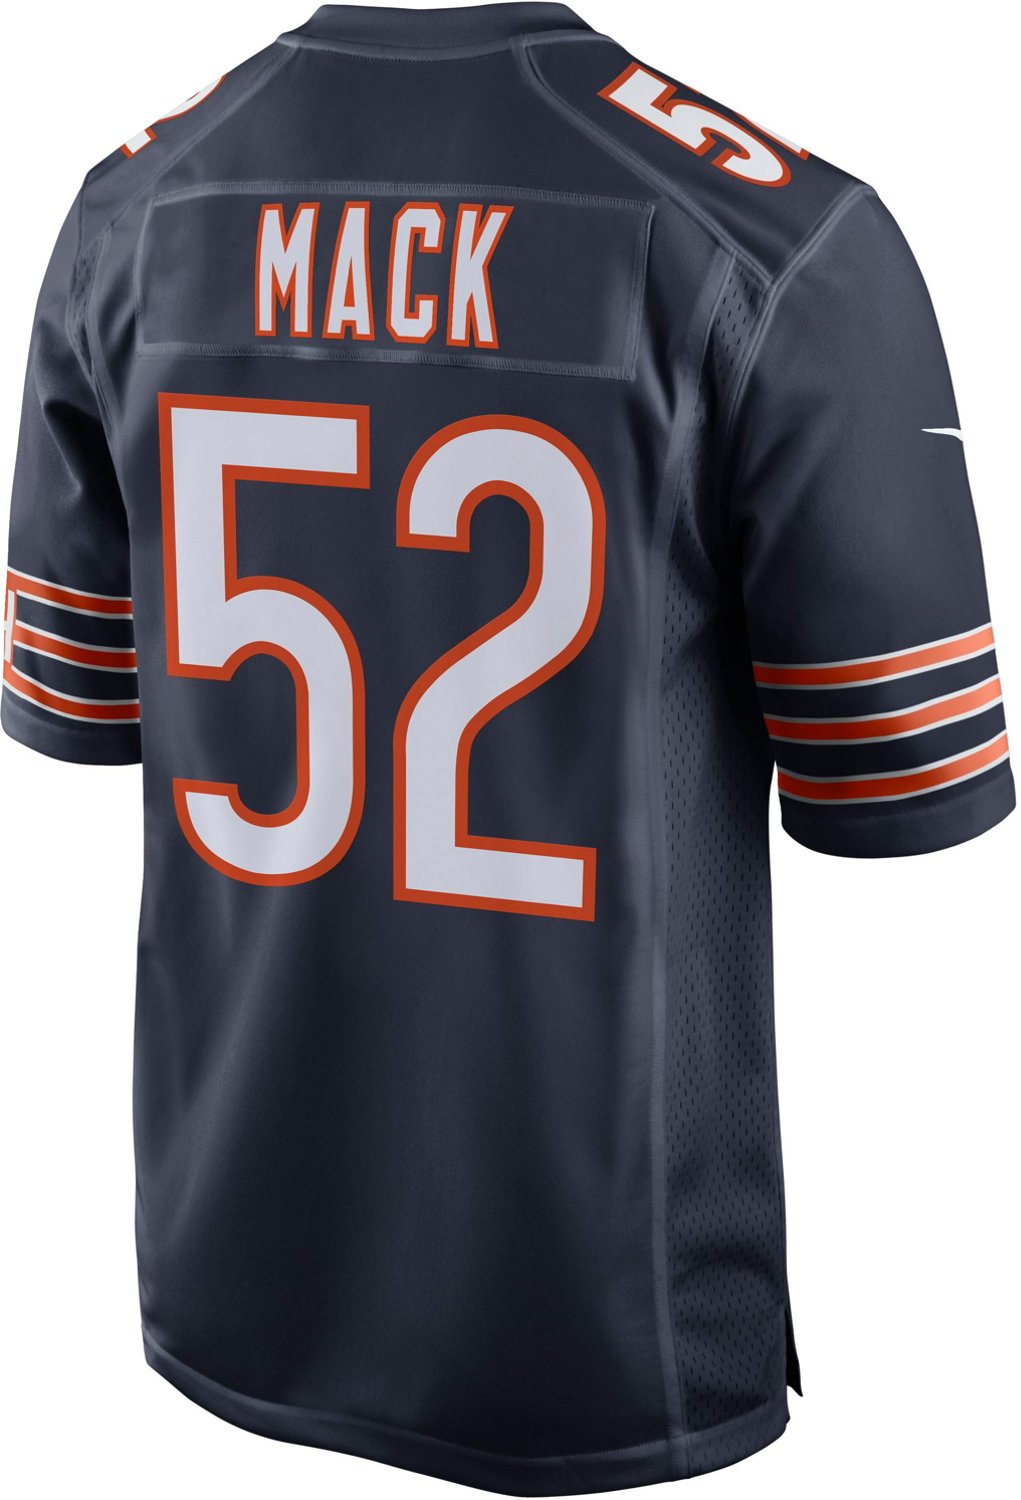 pretty nice c4a63 59355 Nike Men's Chicago Bears Khalil Mack 52 Game Jersey